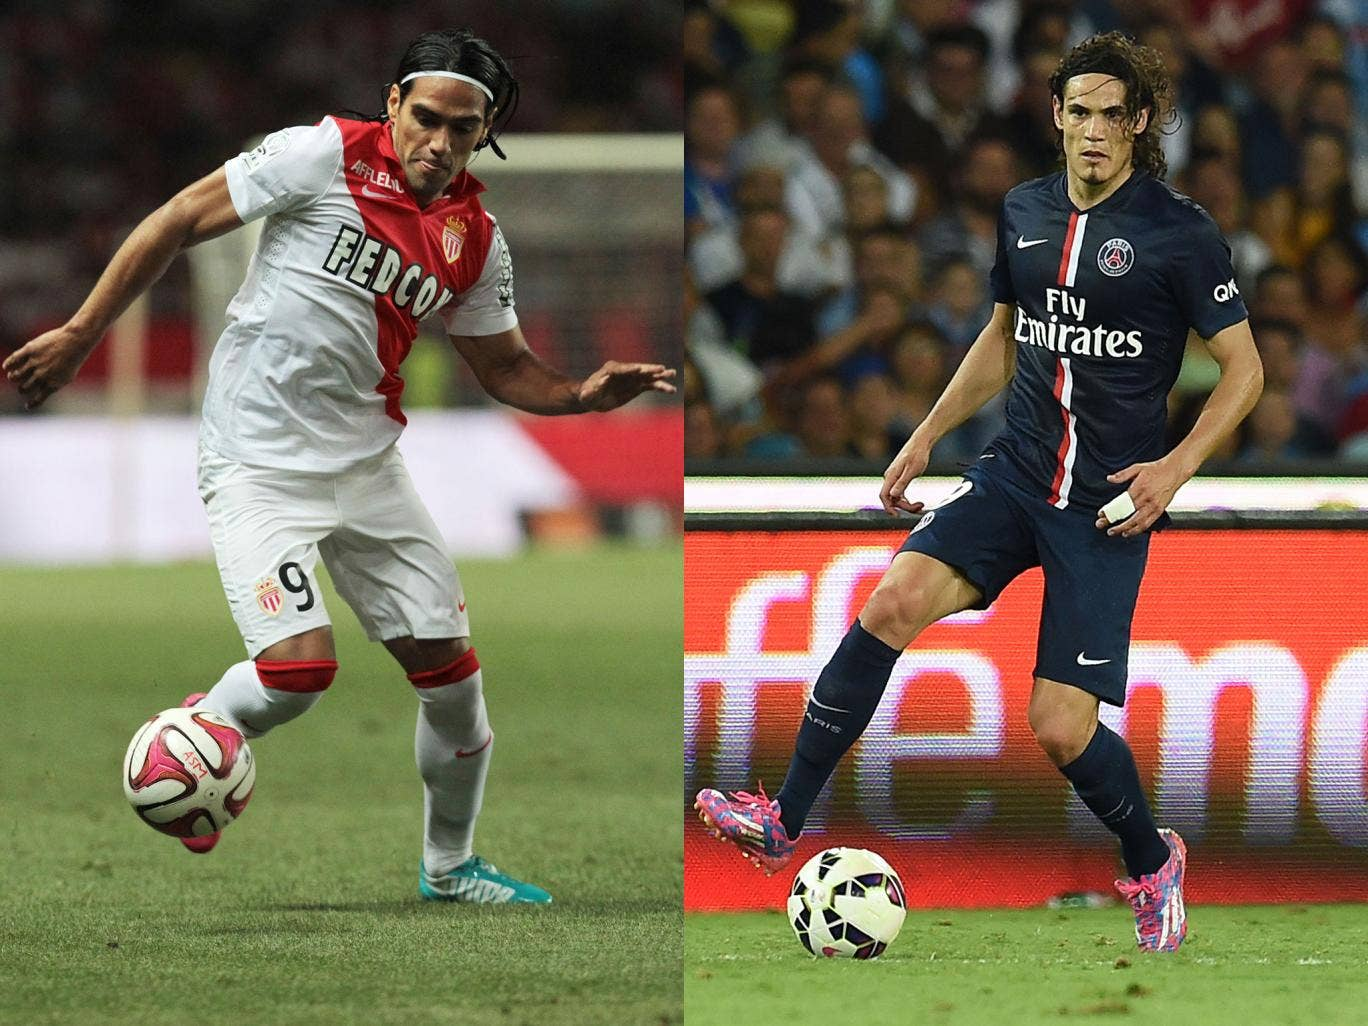 Brendan Rodgers will continue to look for a top striker with Edinson Cavani and Radamel Falcao linked